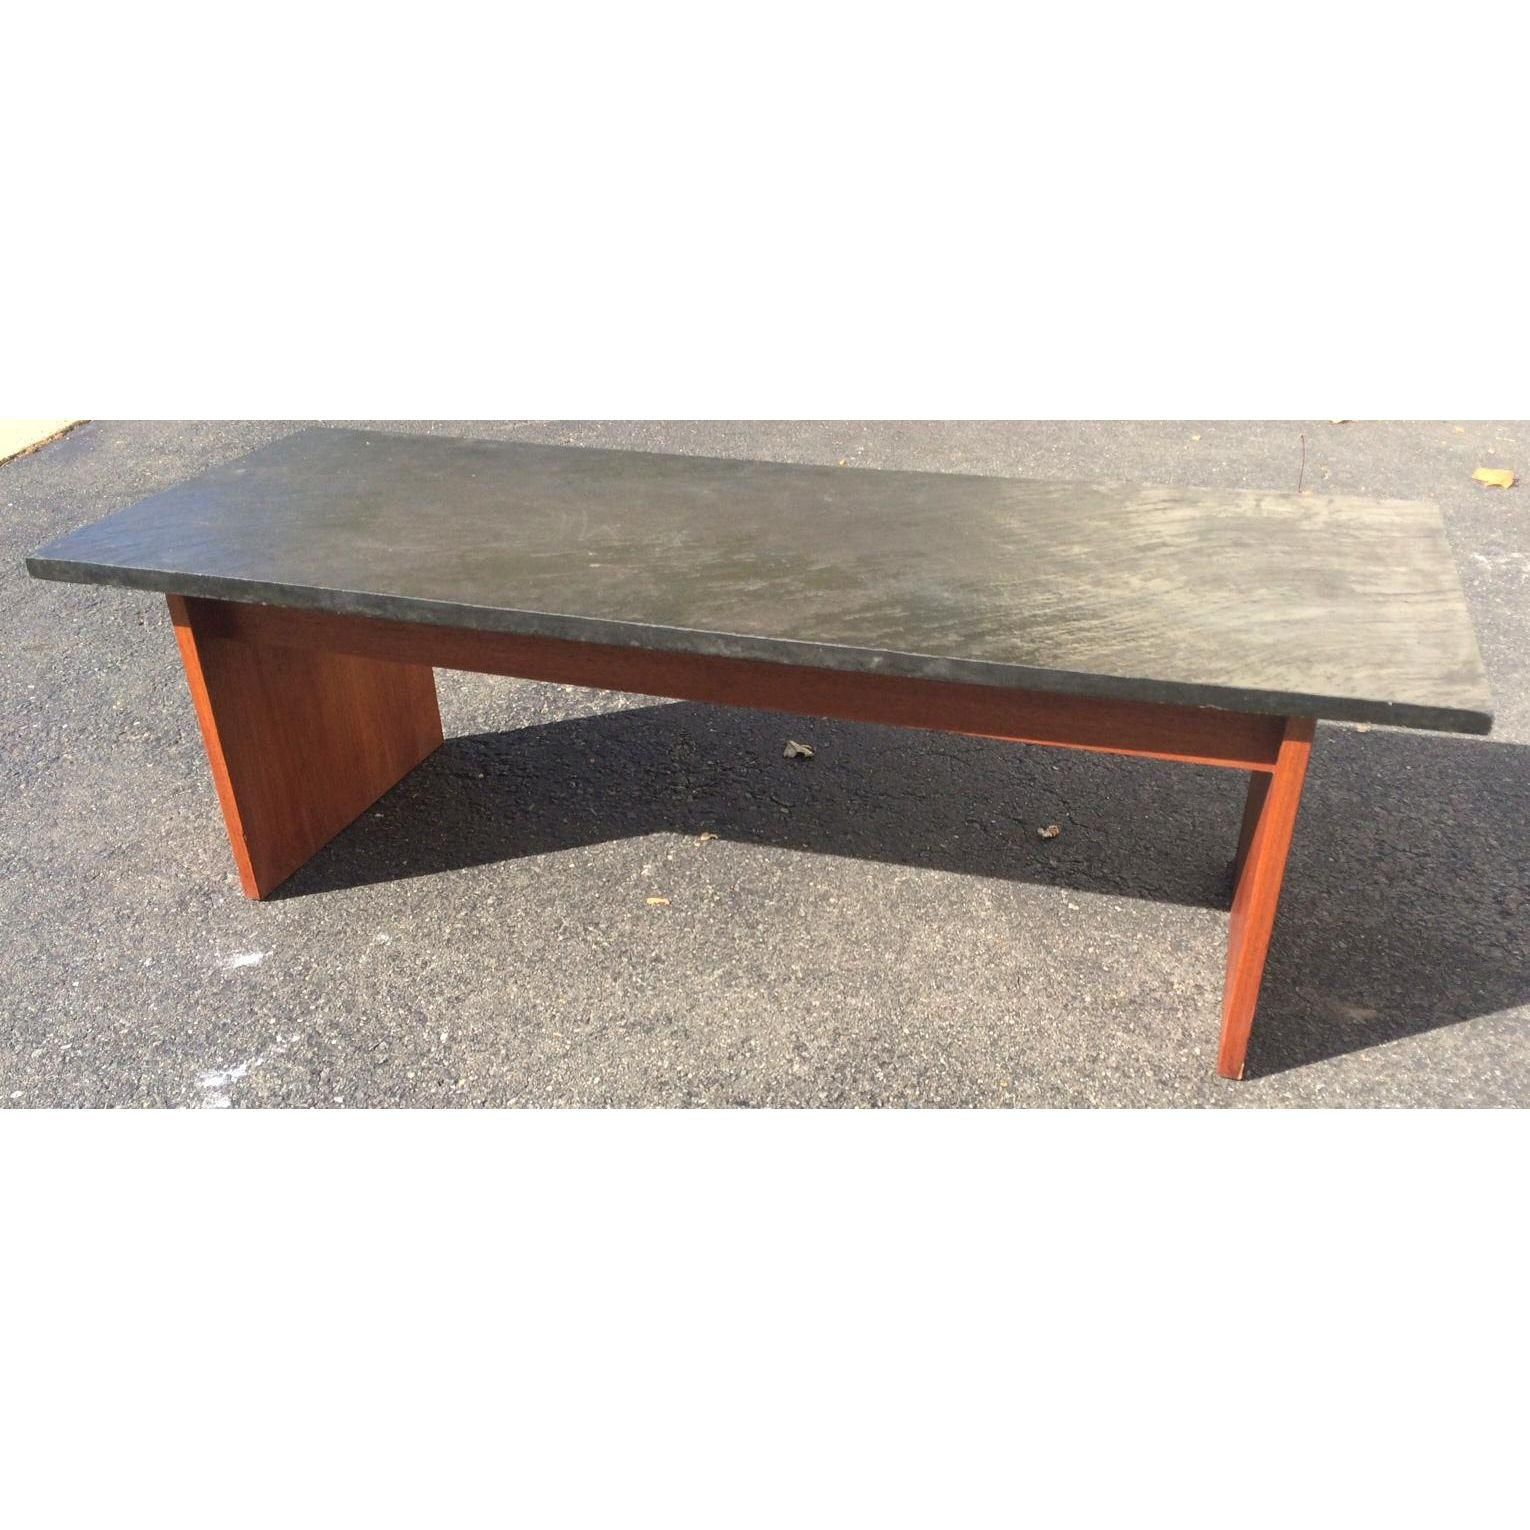 MidCentury Teak With Slate Top Coffee Table Slate Teak and Mid